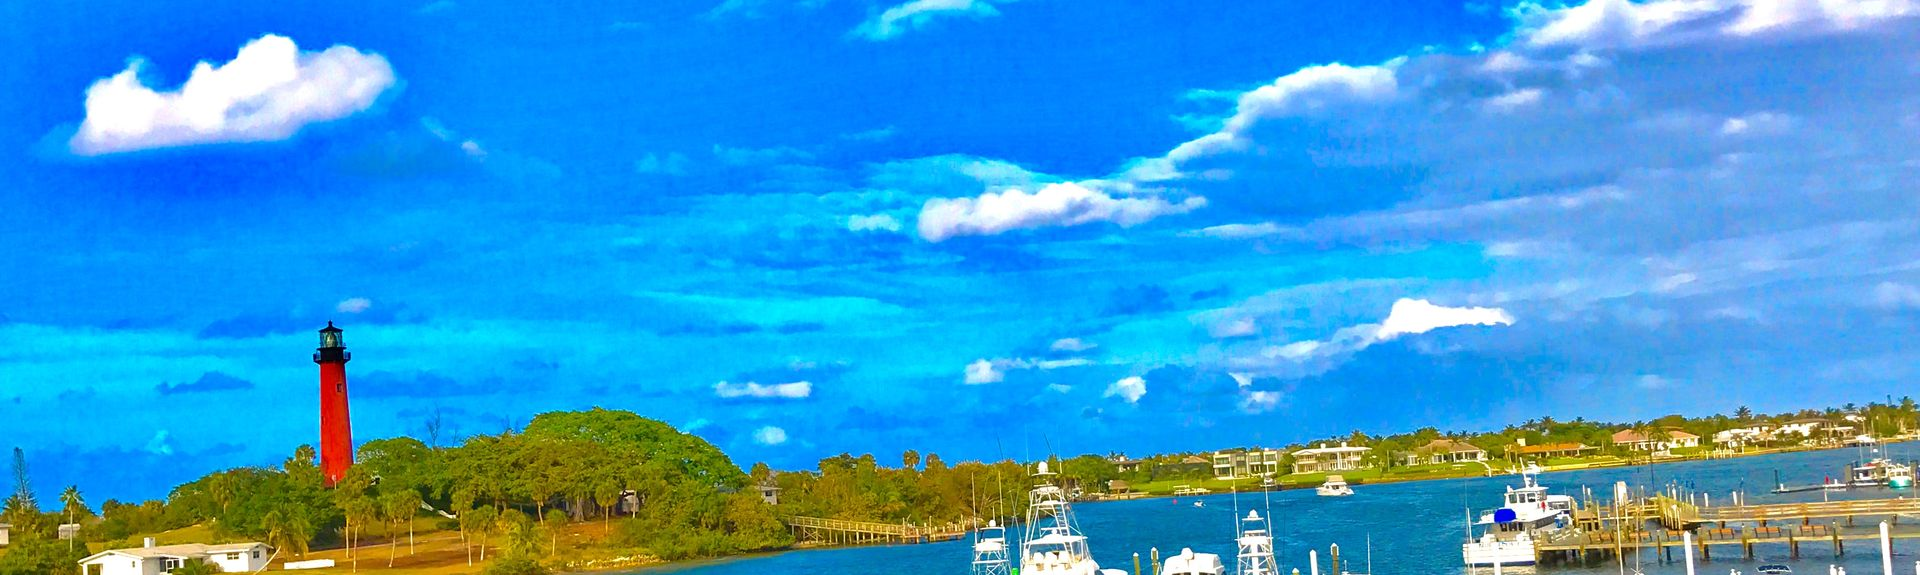 Tequesta, Jupiter, Florida, United States of America